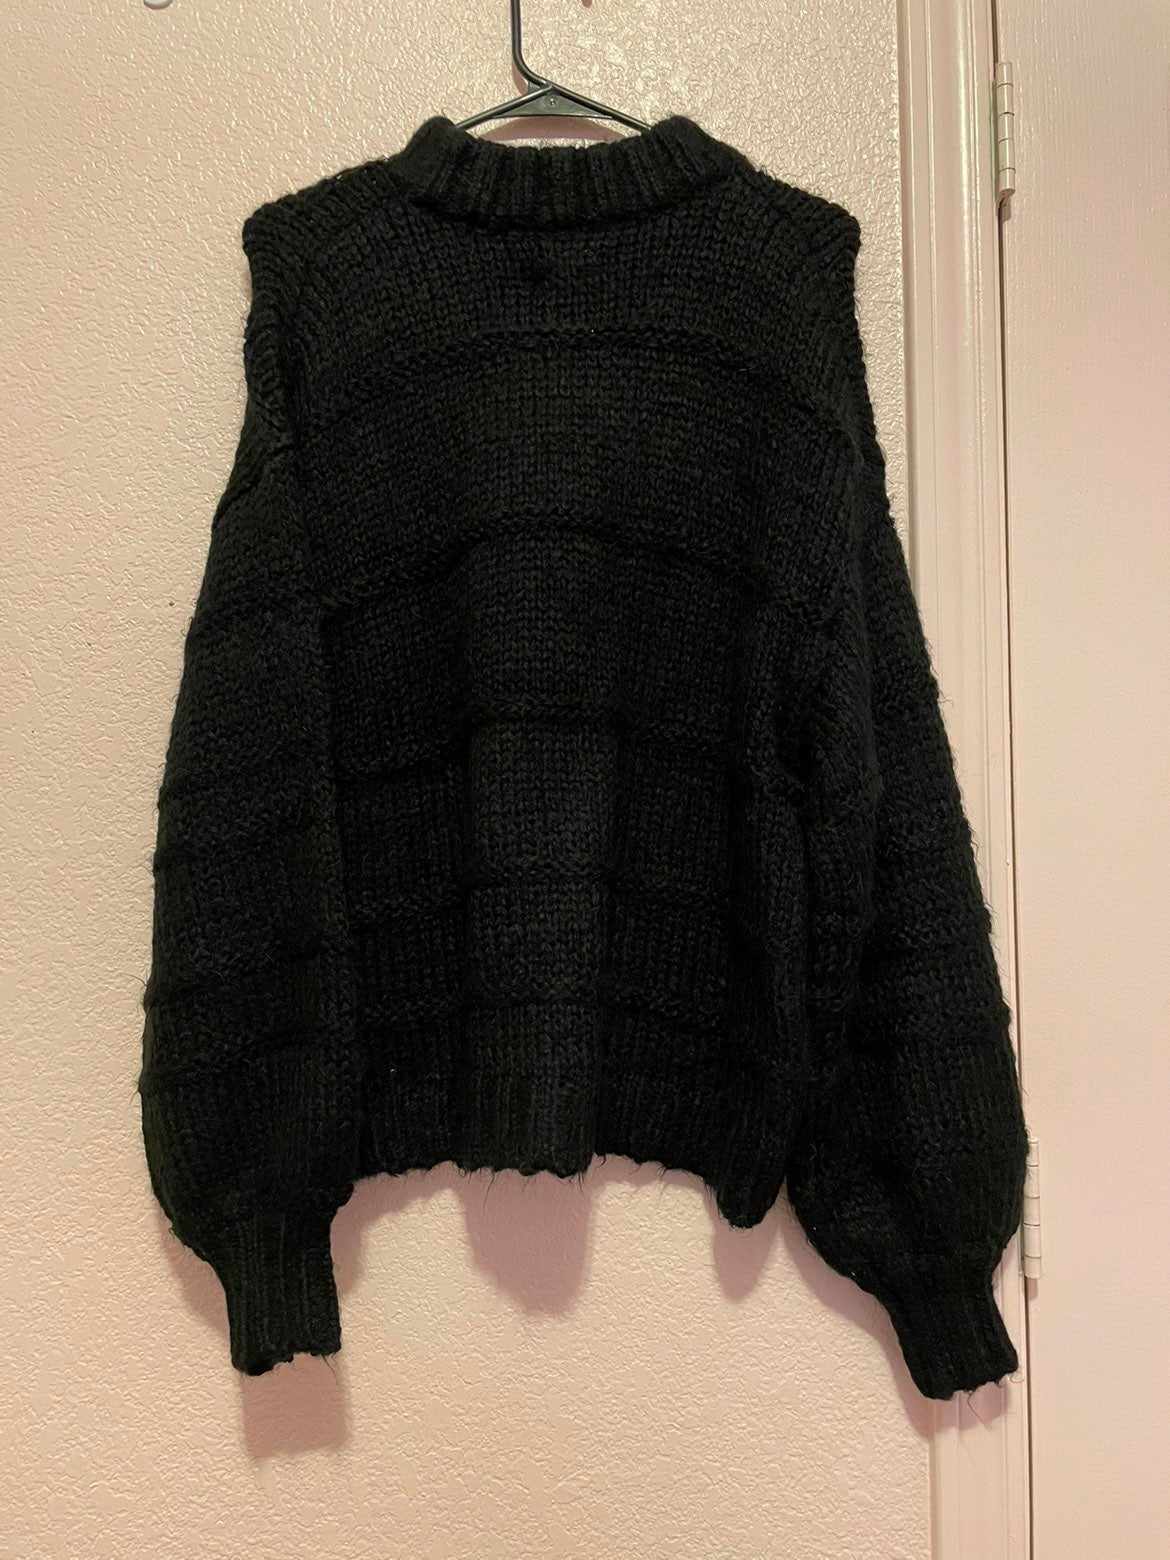 Urban Outfitters Blythe Sweater